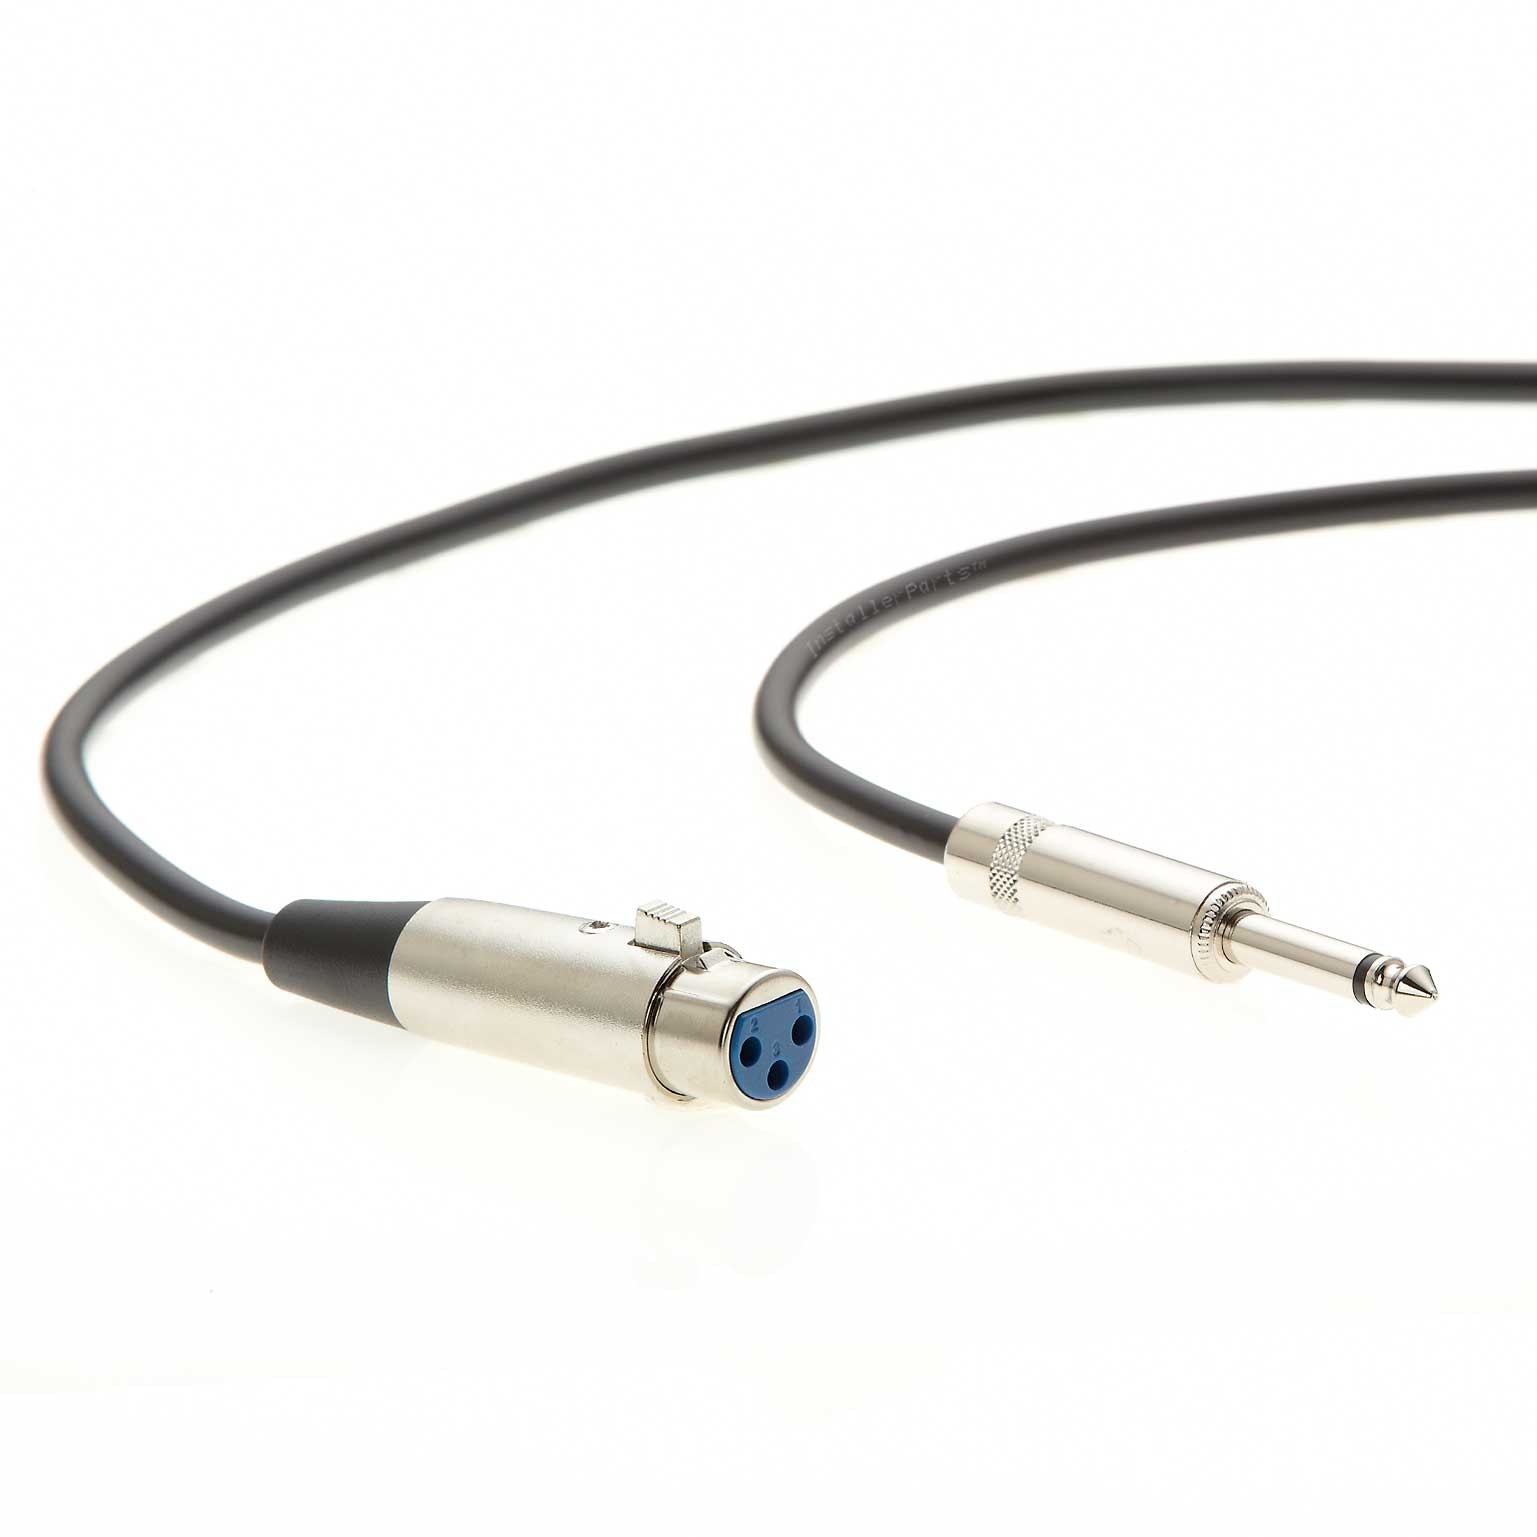 InstallerParts 100Ft 1//4 Mono Male to XLR Female Microphone Cable Compatible with Amplifiers and More! Instruments